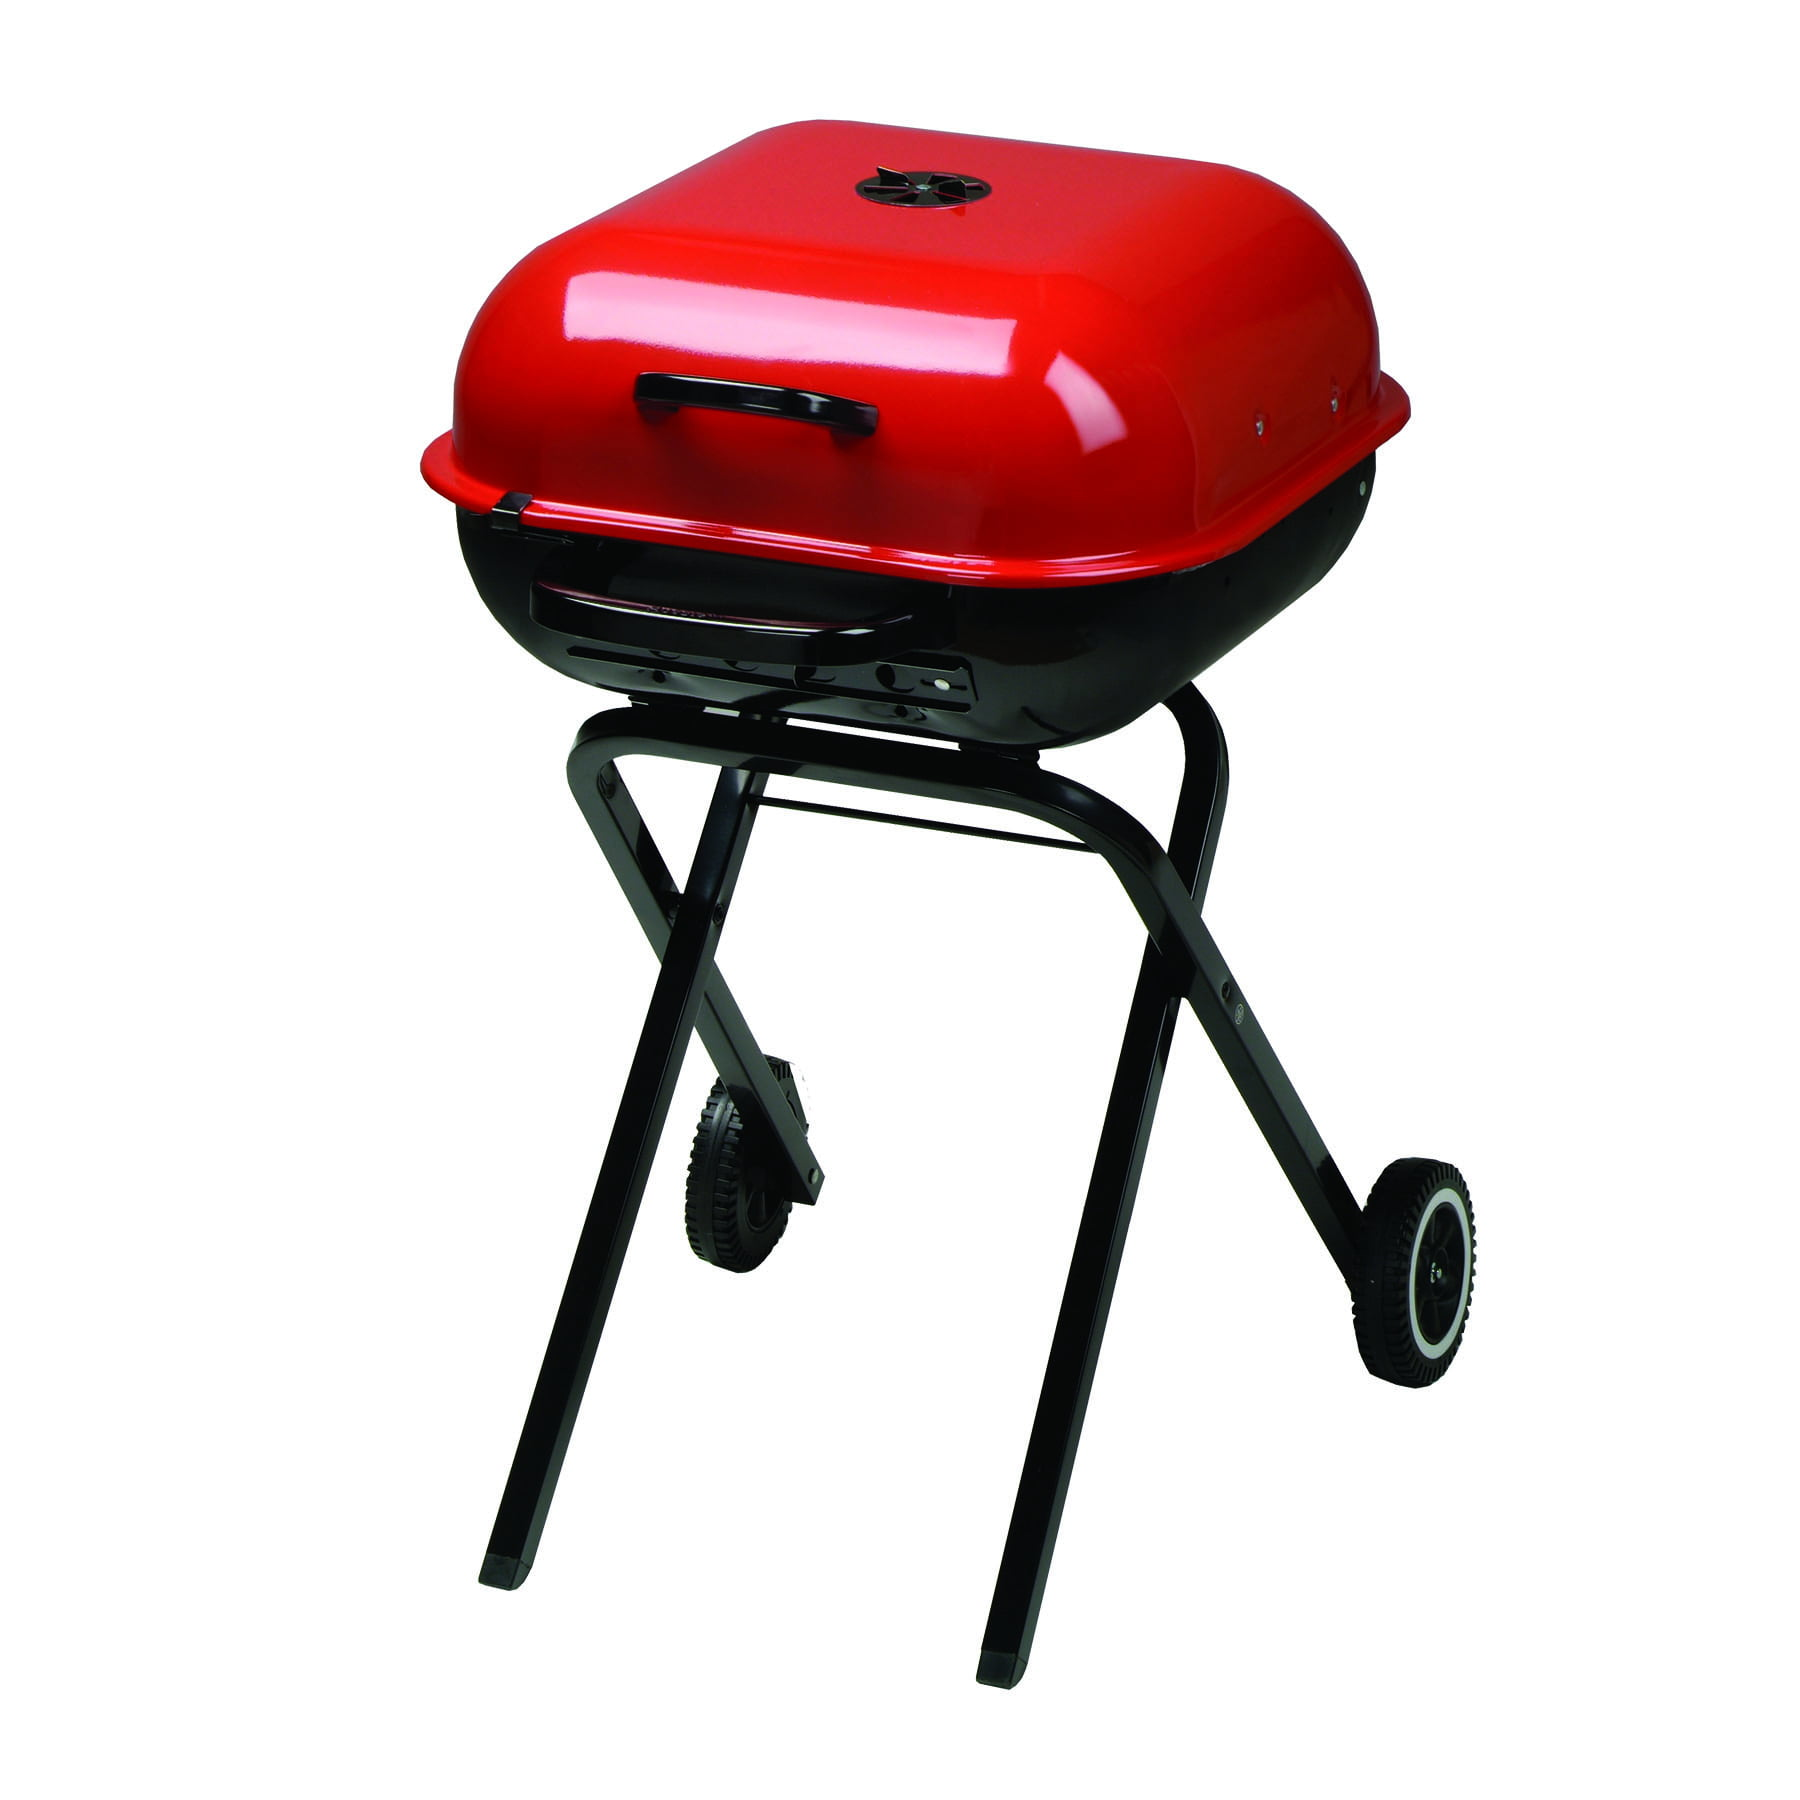 Americana Walk-A-Bout Charcoal Grill in Red